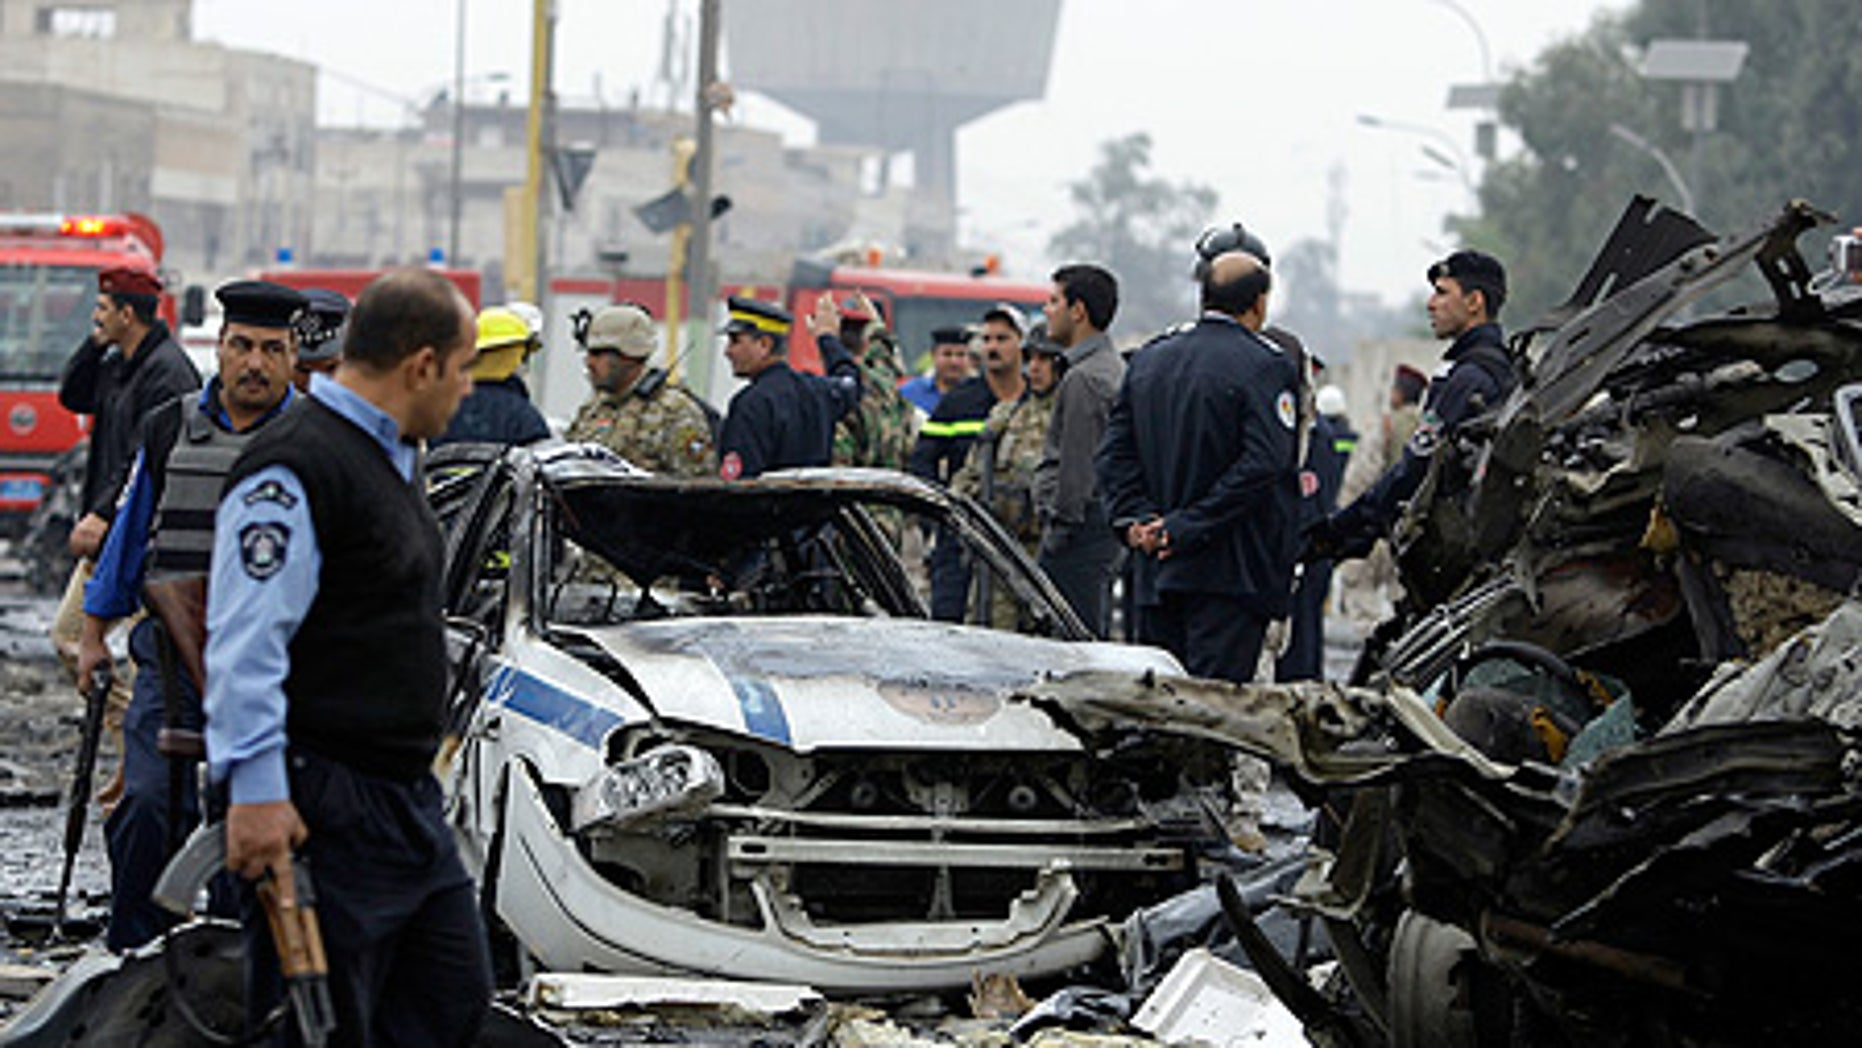 Dec. 8: Iraqi security forces gather at the site of a bomb attack near the Labor Ministry building in Baghdad.